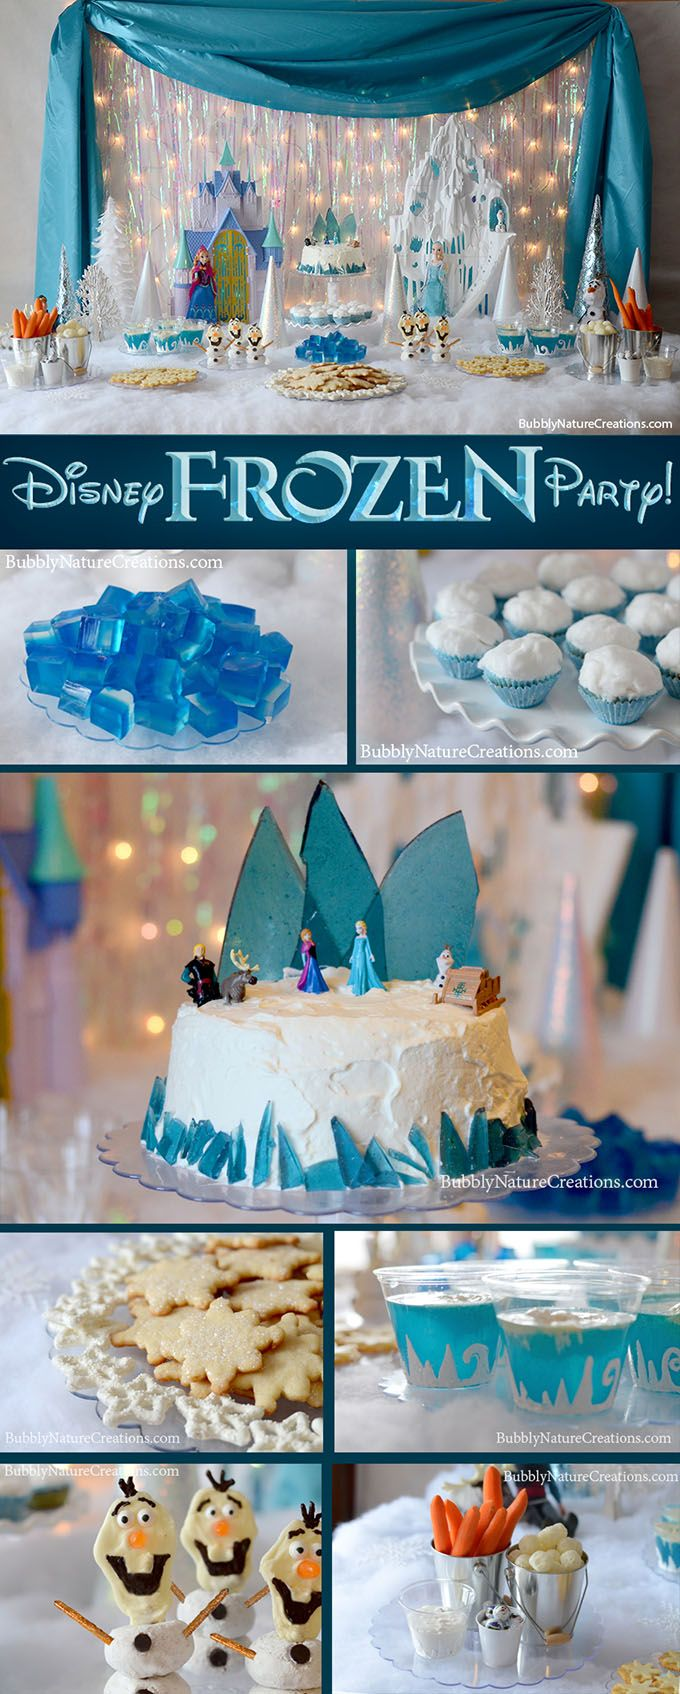 Disney Frozen Party! The Ultimate FROZEN party full of the best ideas